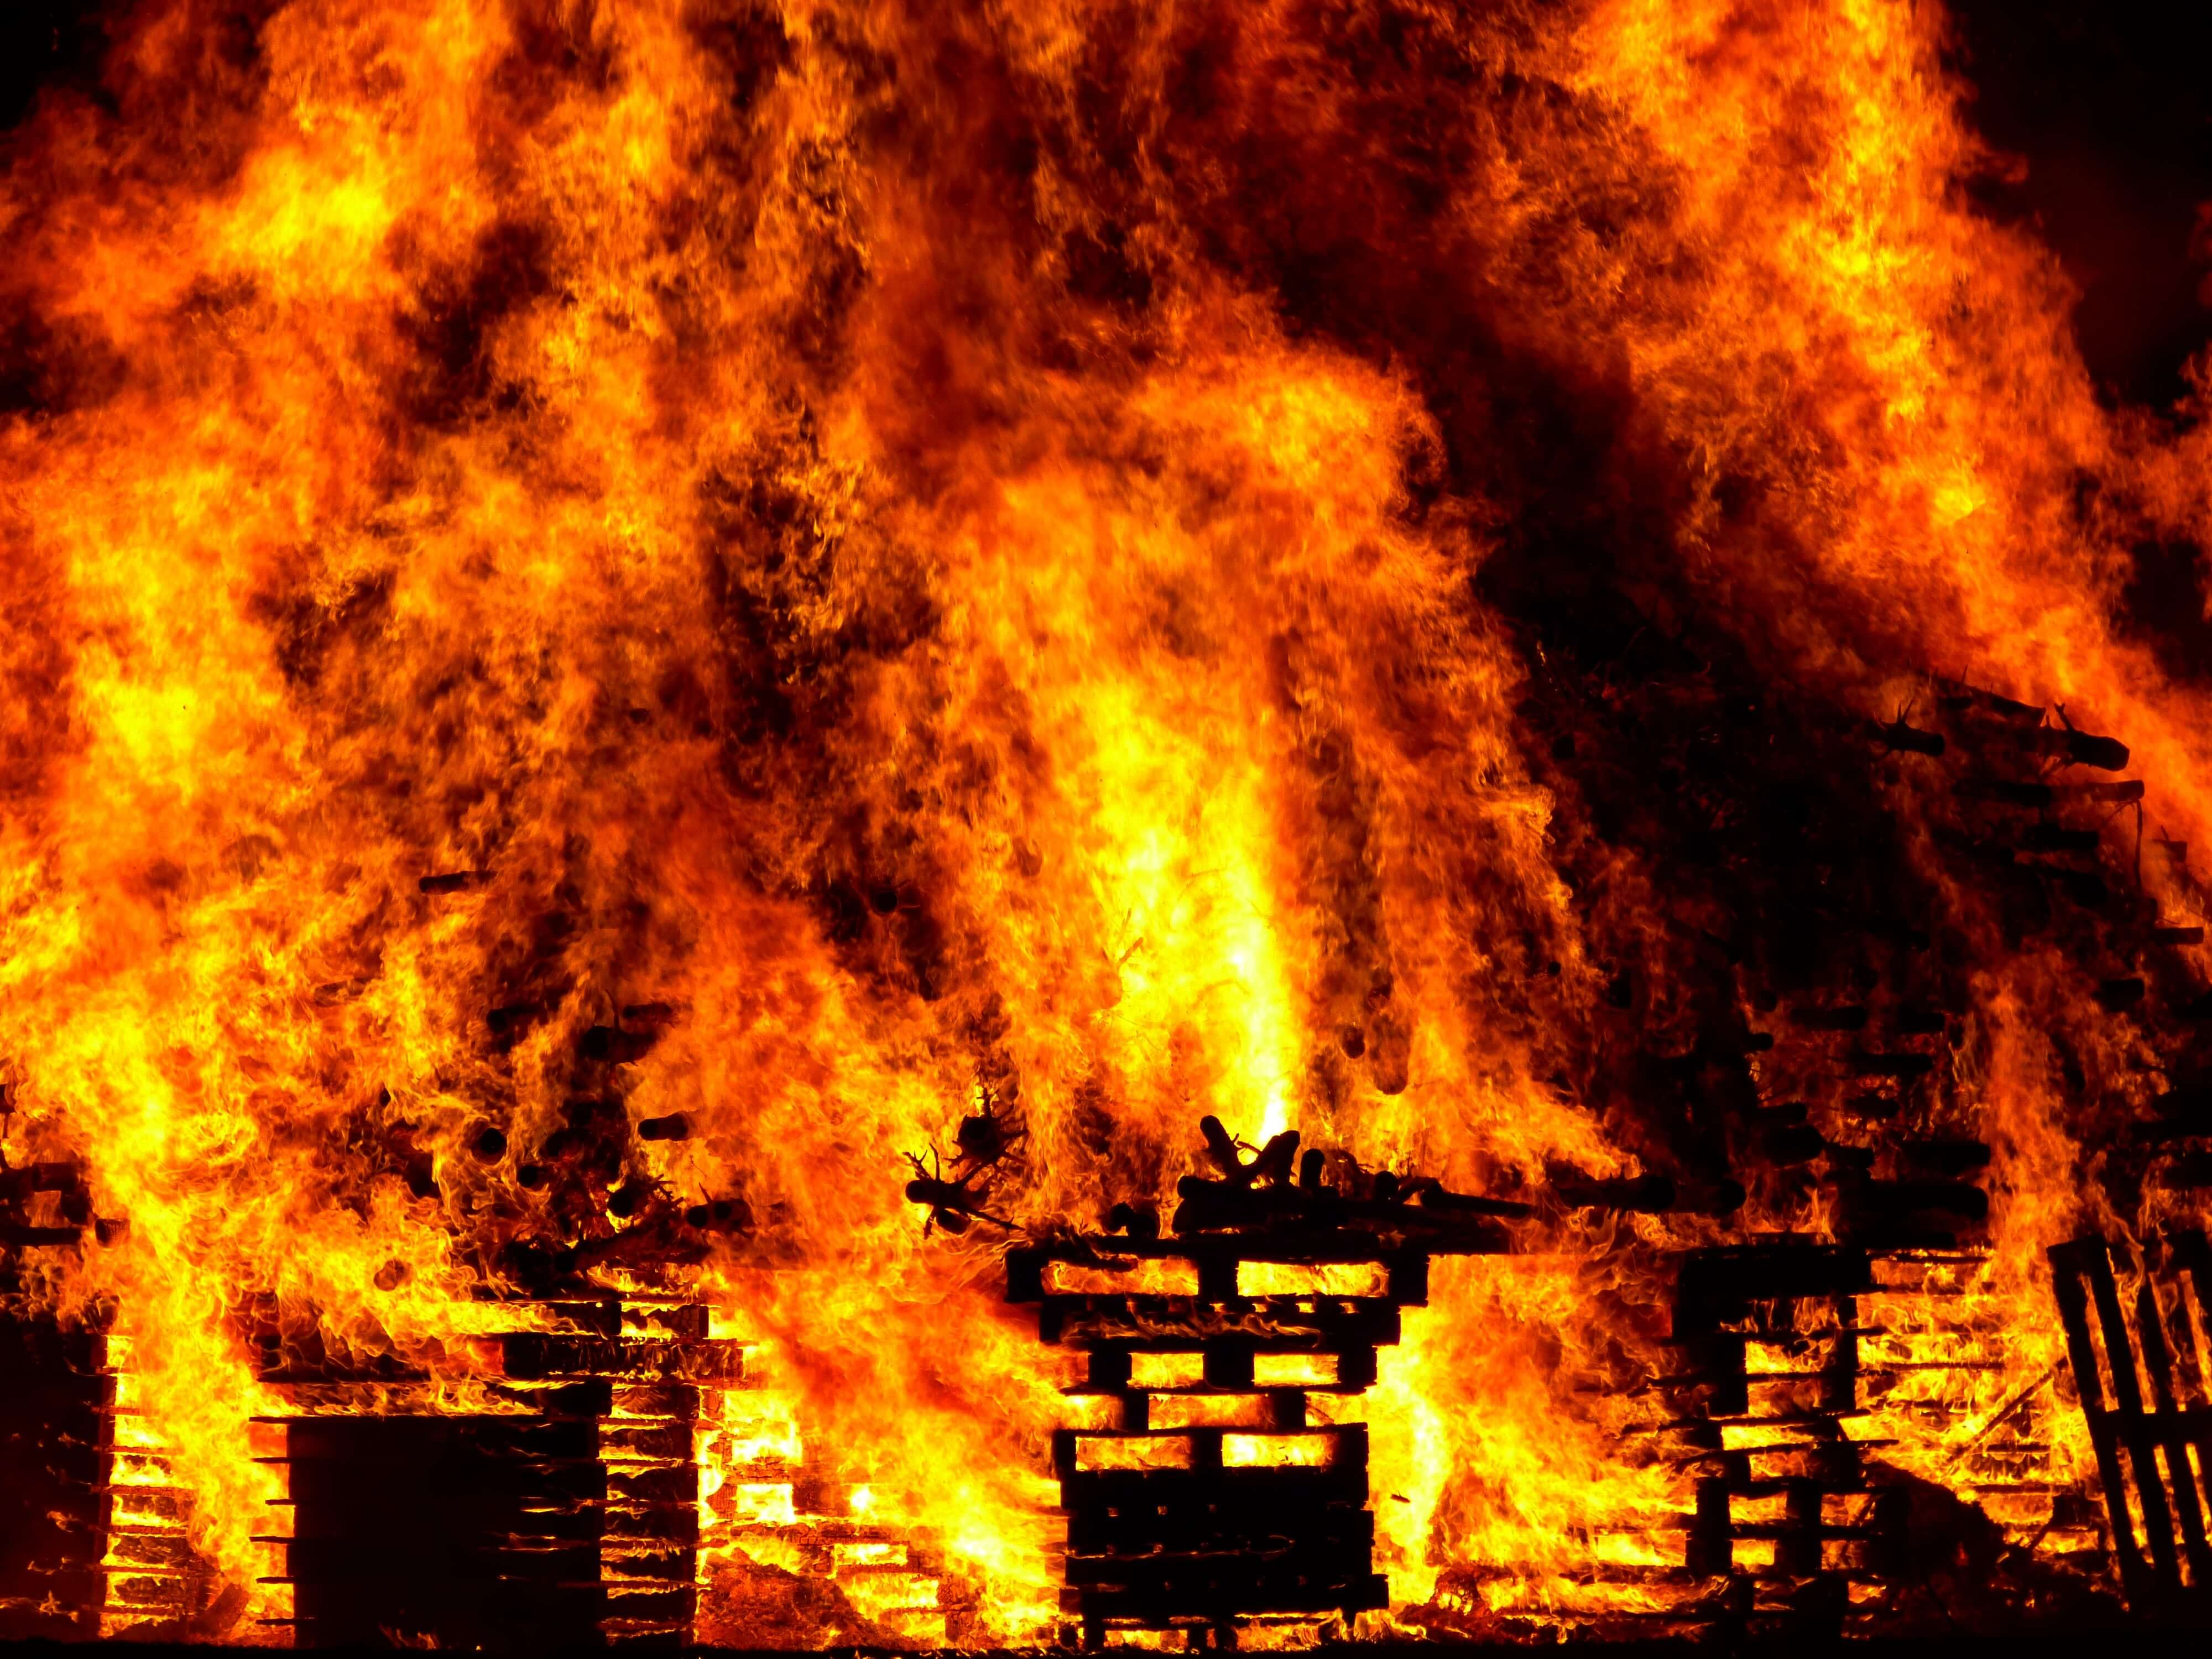 Fire Prevention Tips to Reduce Your Risk of a House Fire